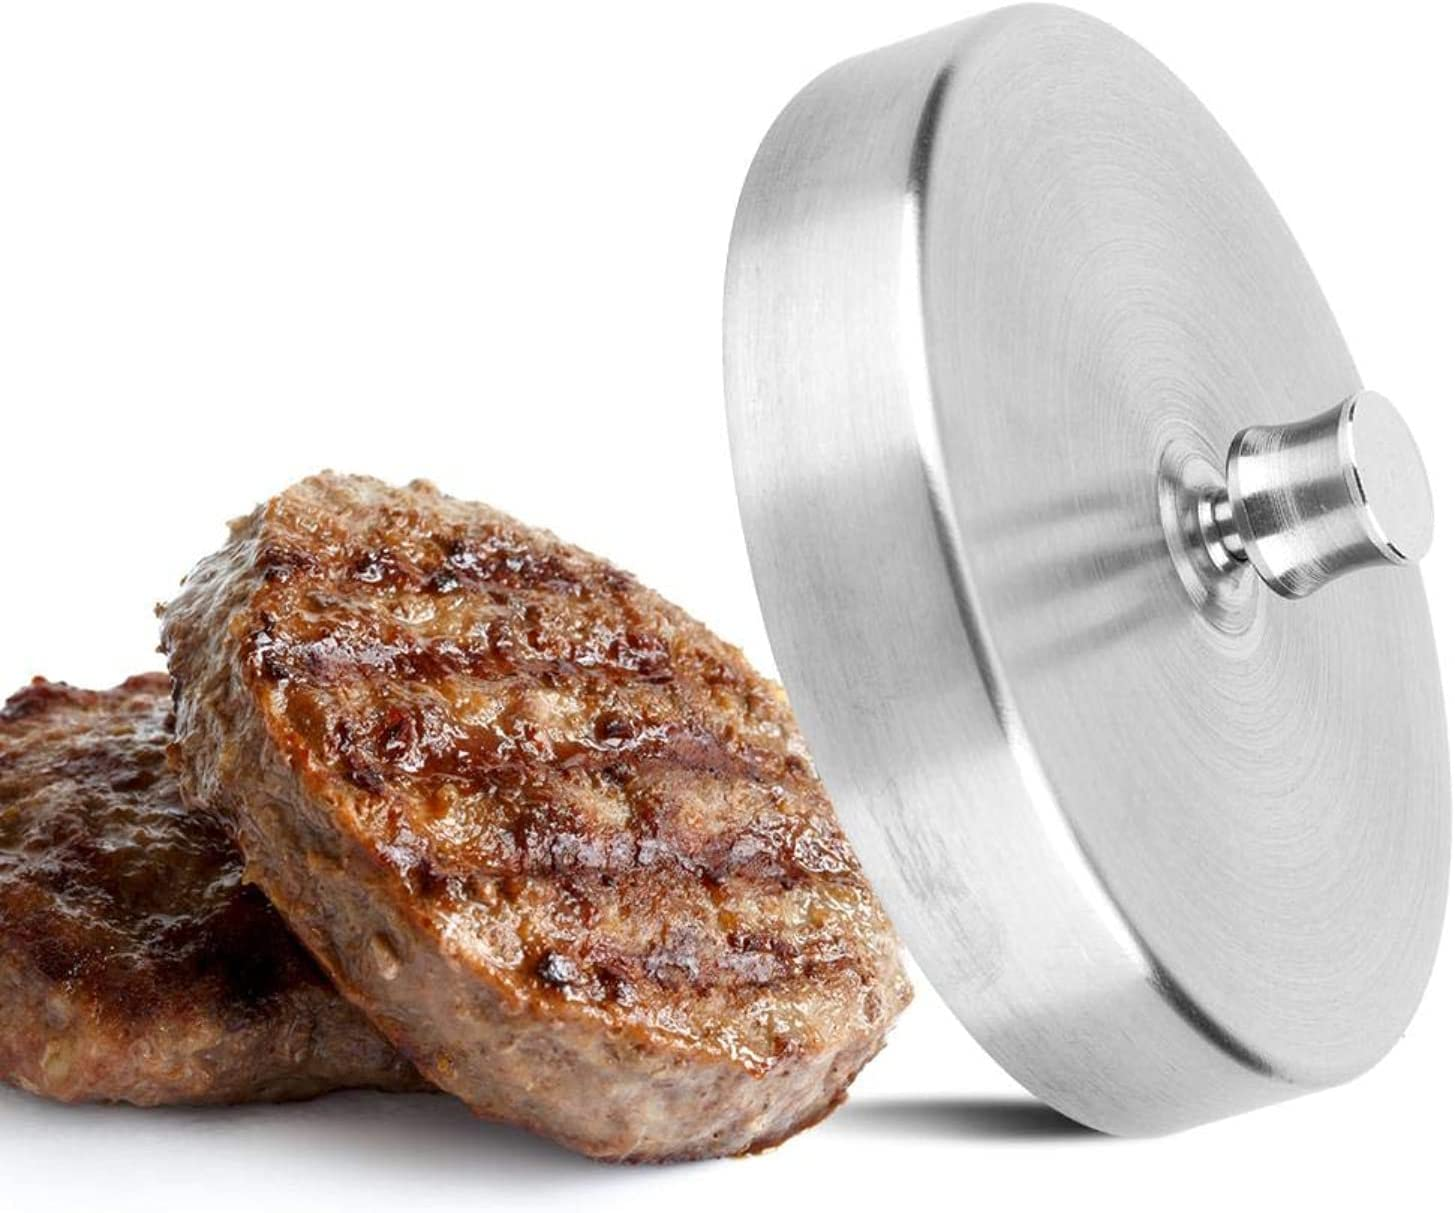 Stainless Steel Burger Meat Press Hamburger Pressing Mold Maker Kitchen Tool Burger, Bacon, Grill Press for Home